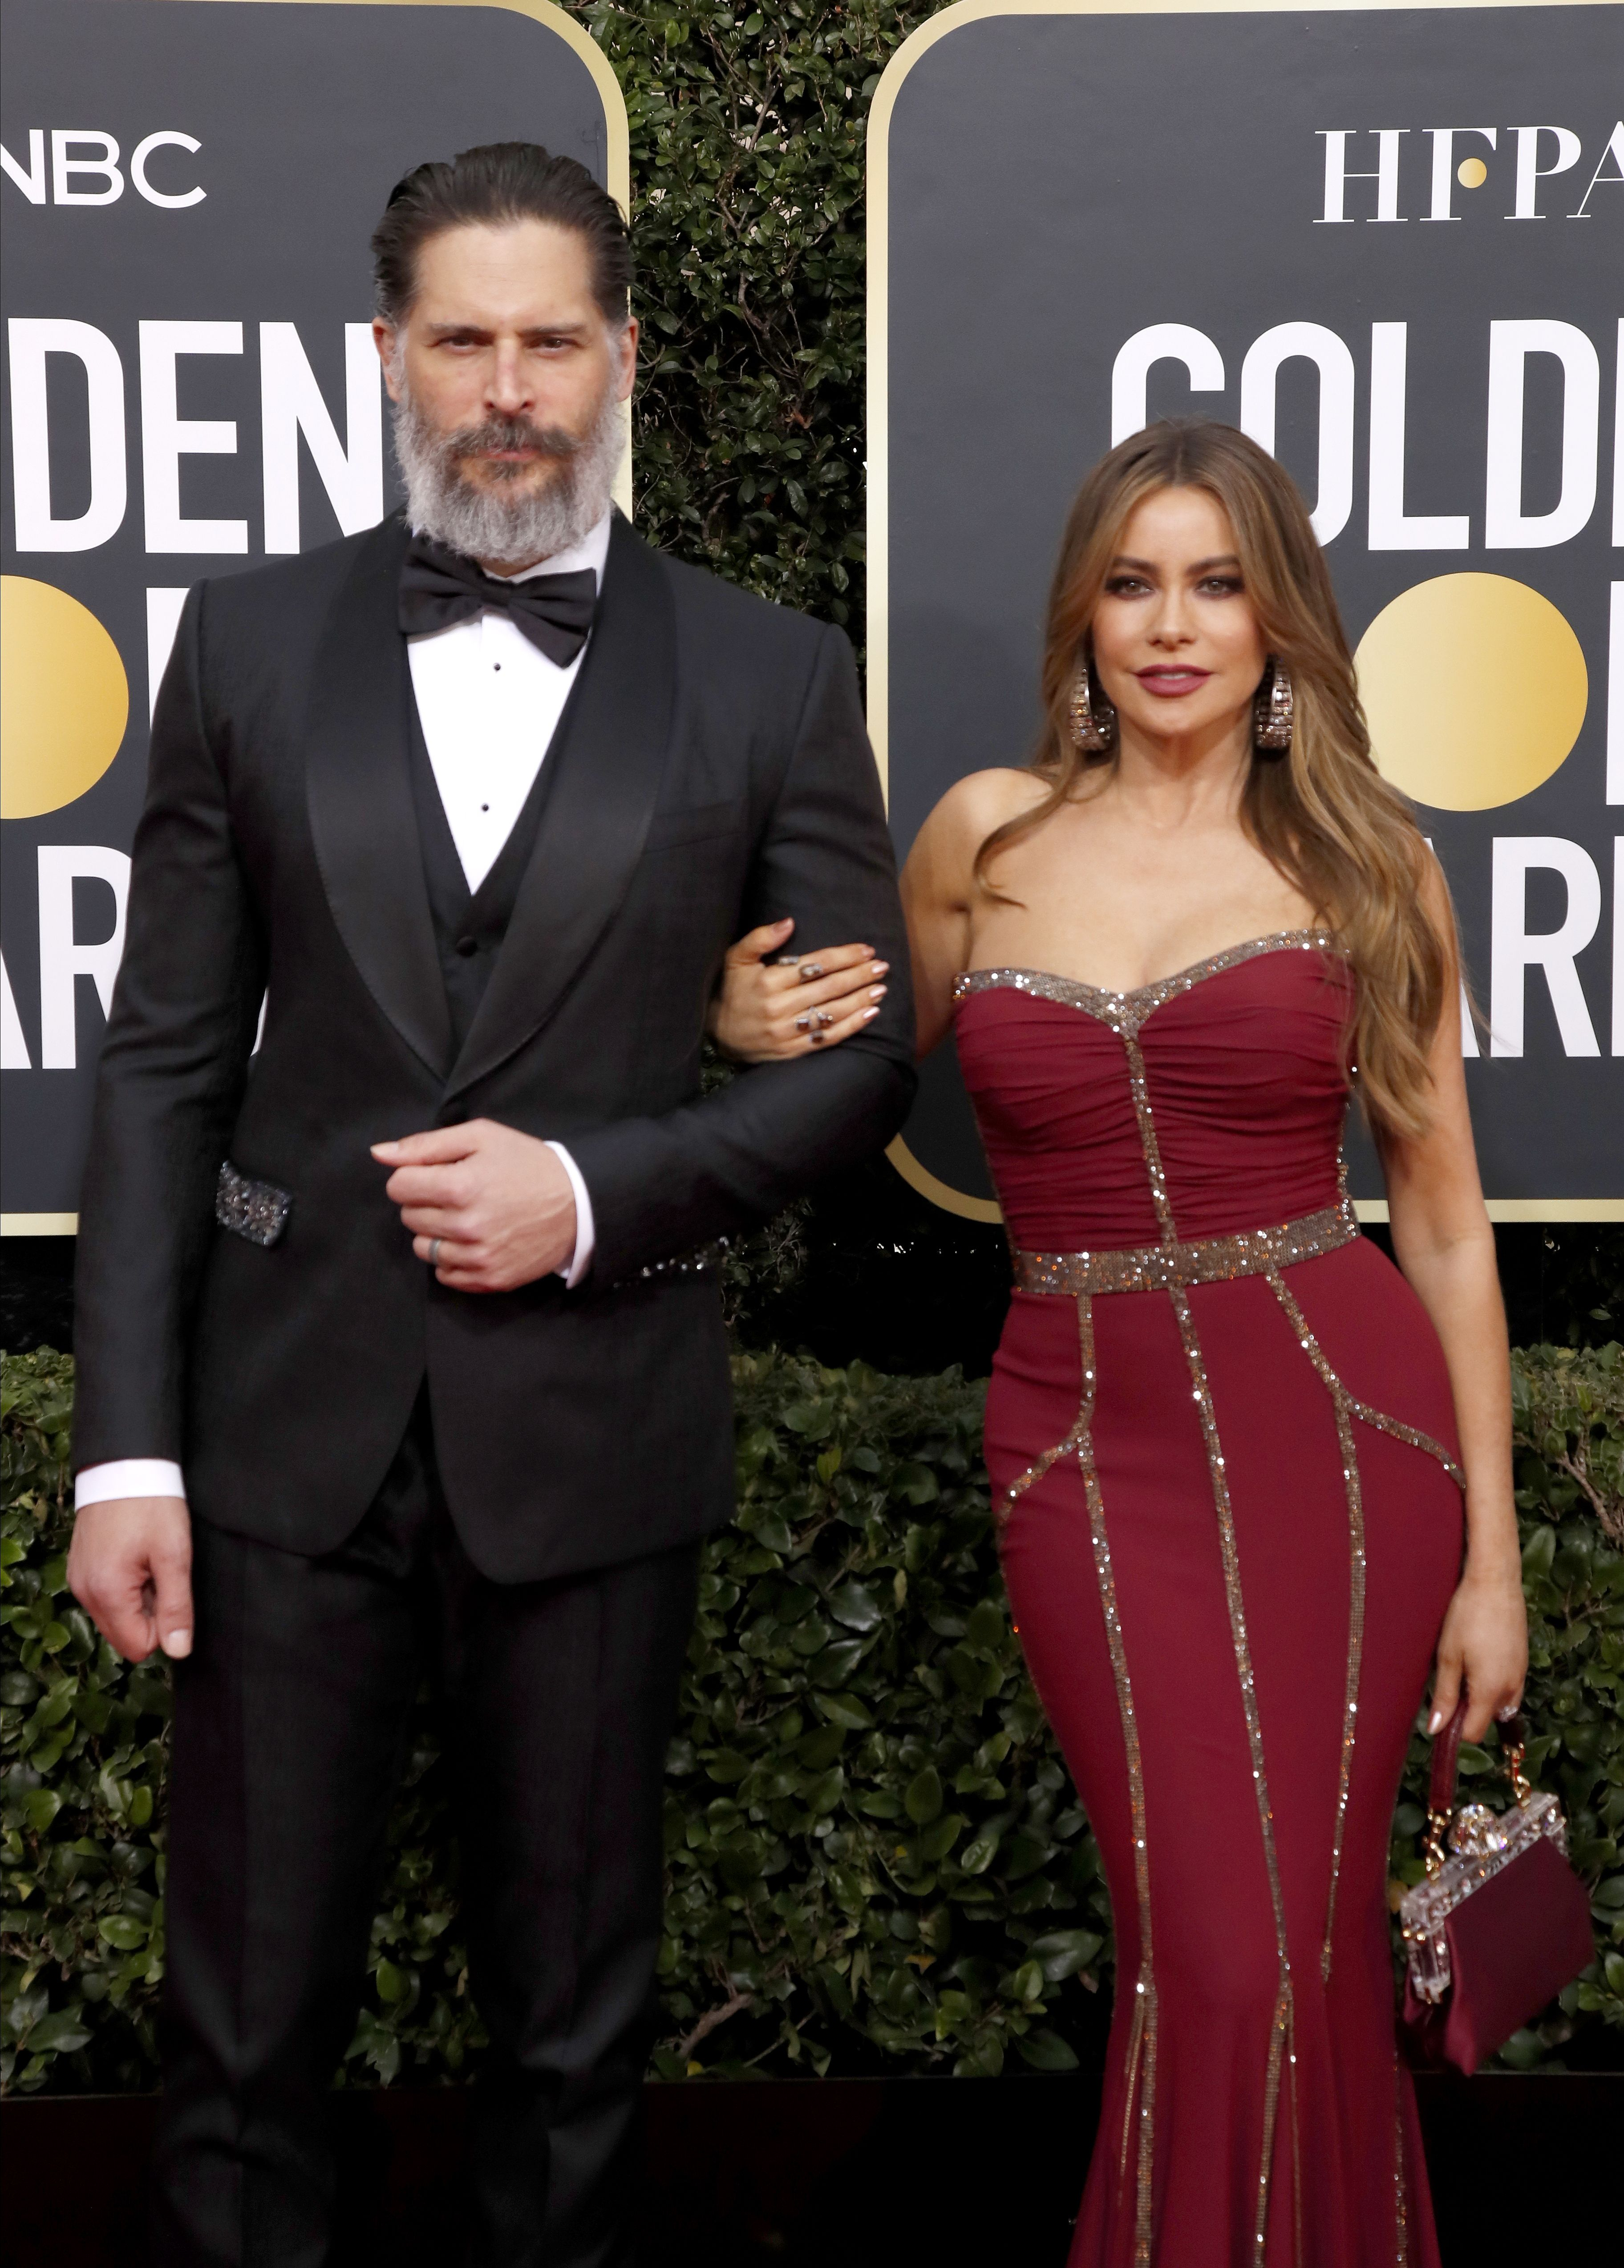 Joe Manganiello and Sofia Vergara arrives for the 77th annual Golden Globe Awards ceremony at the Beverly Hilton Hotel, in Beverly Hills, California, USA, 05 January 2020.Arrivals - 77th Golden Globe Awards, Beverly Hills, USA - 05 Jan 2020